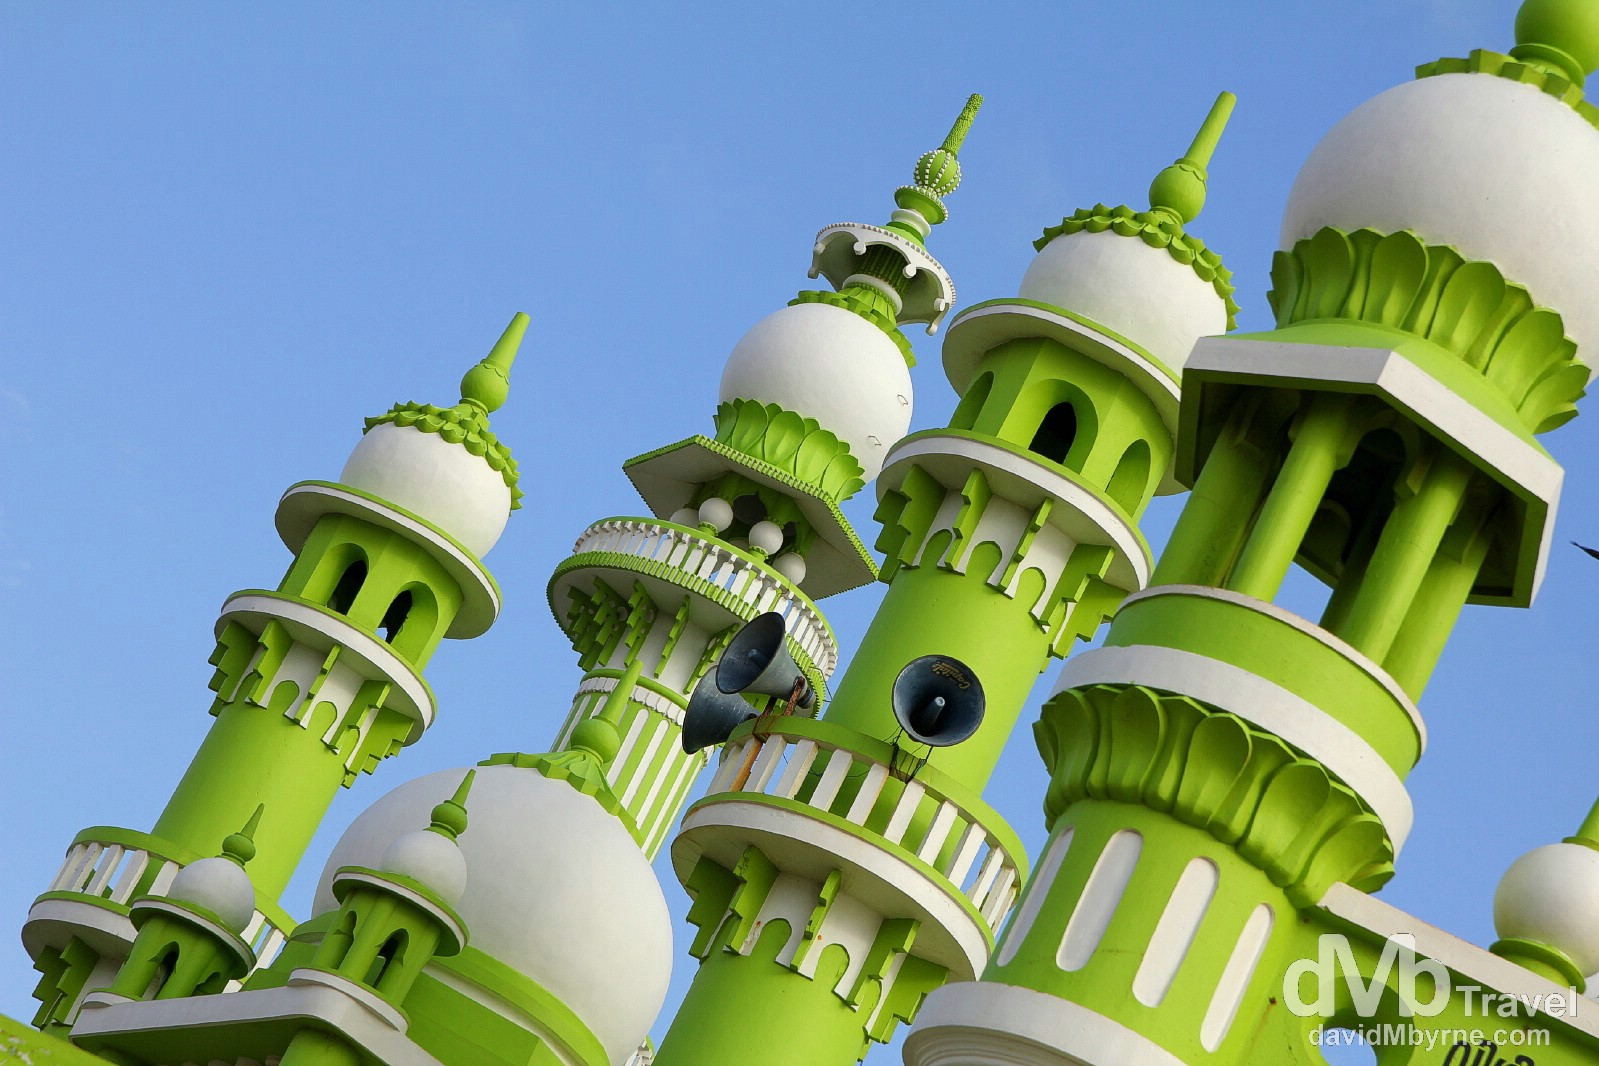 The minarets of the Darga Sherief mosque outside of Kovalam, Kerala, southwestern India. September 13th 2012.